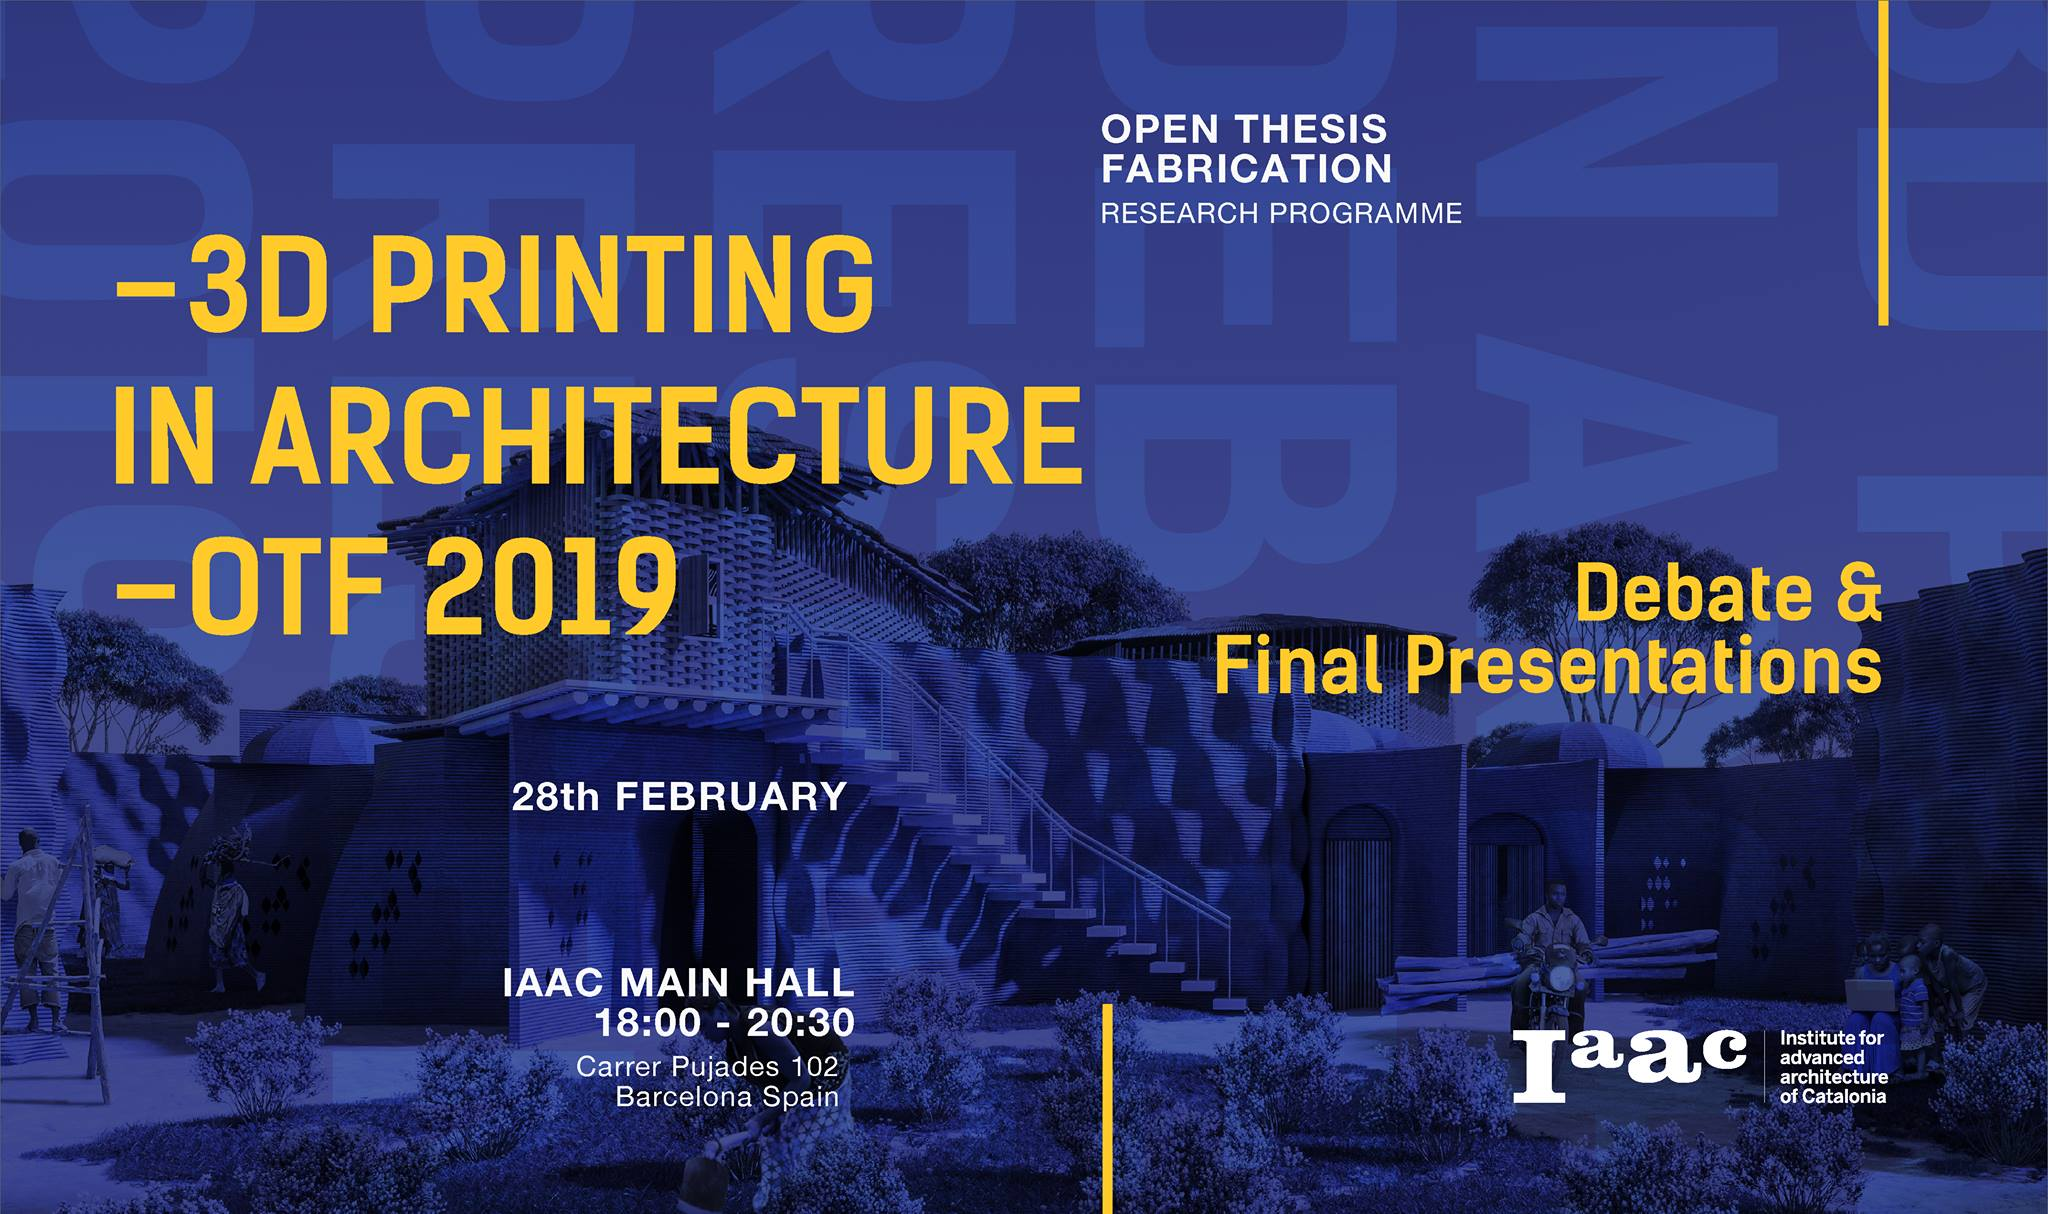 3D Printing in Architecture | OTF 2019 | 3D Printers | WASP